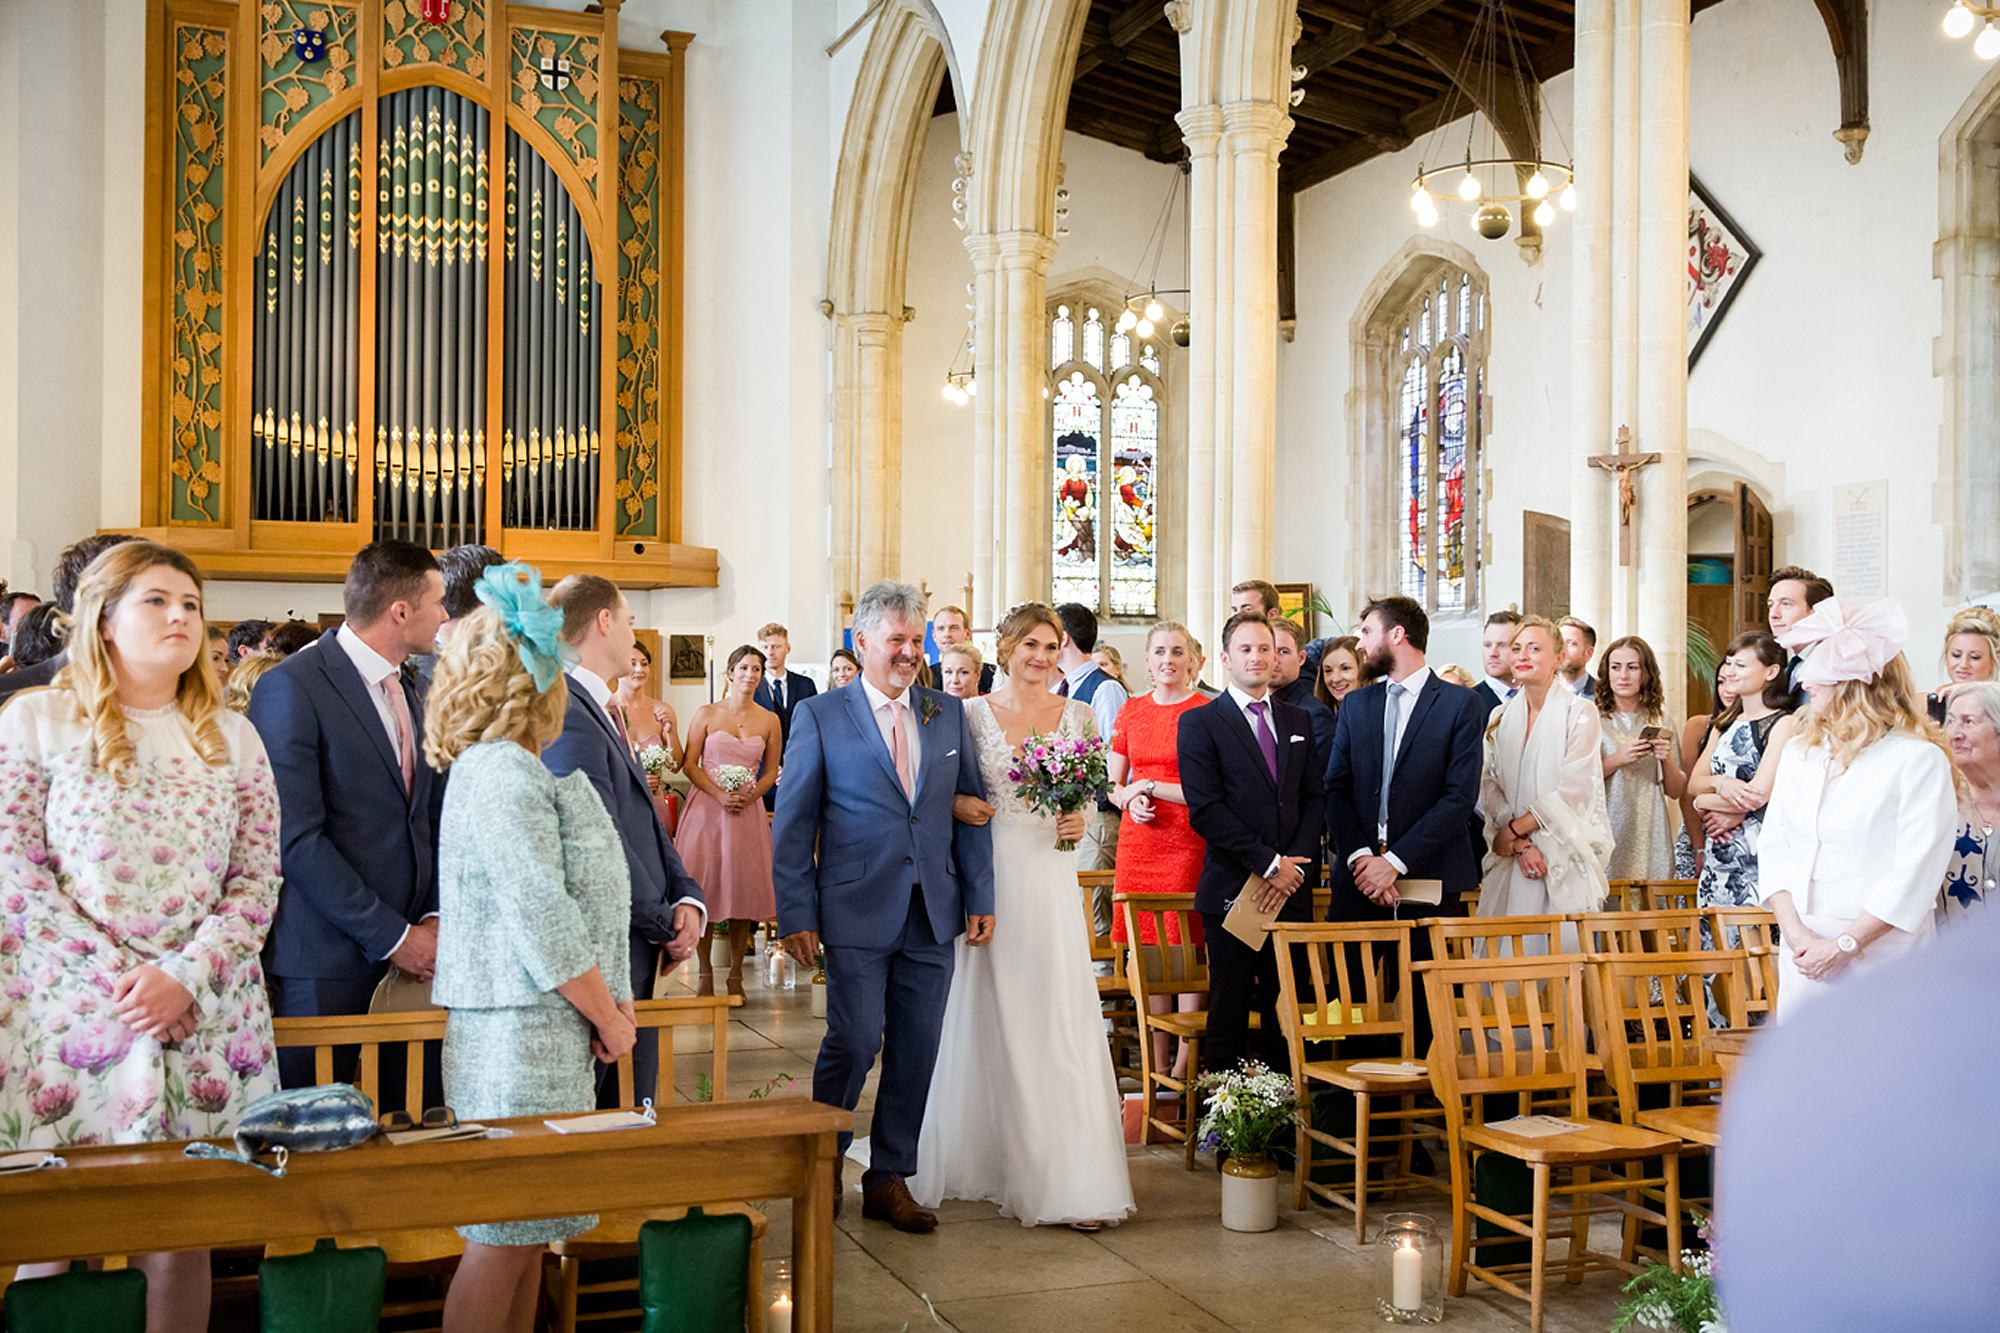 Marks Hall Estate wedding photography bride walking down aisle